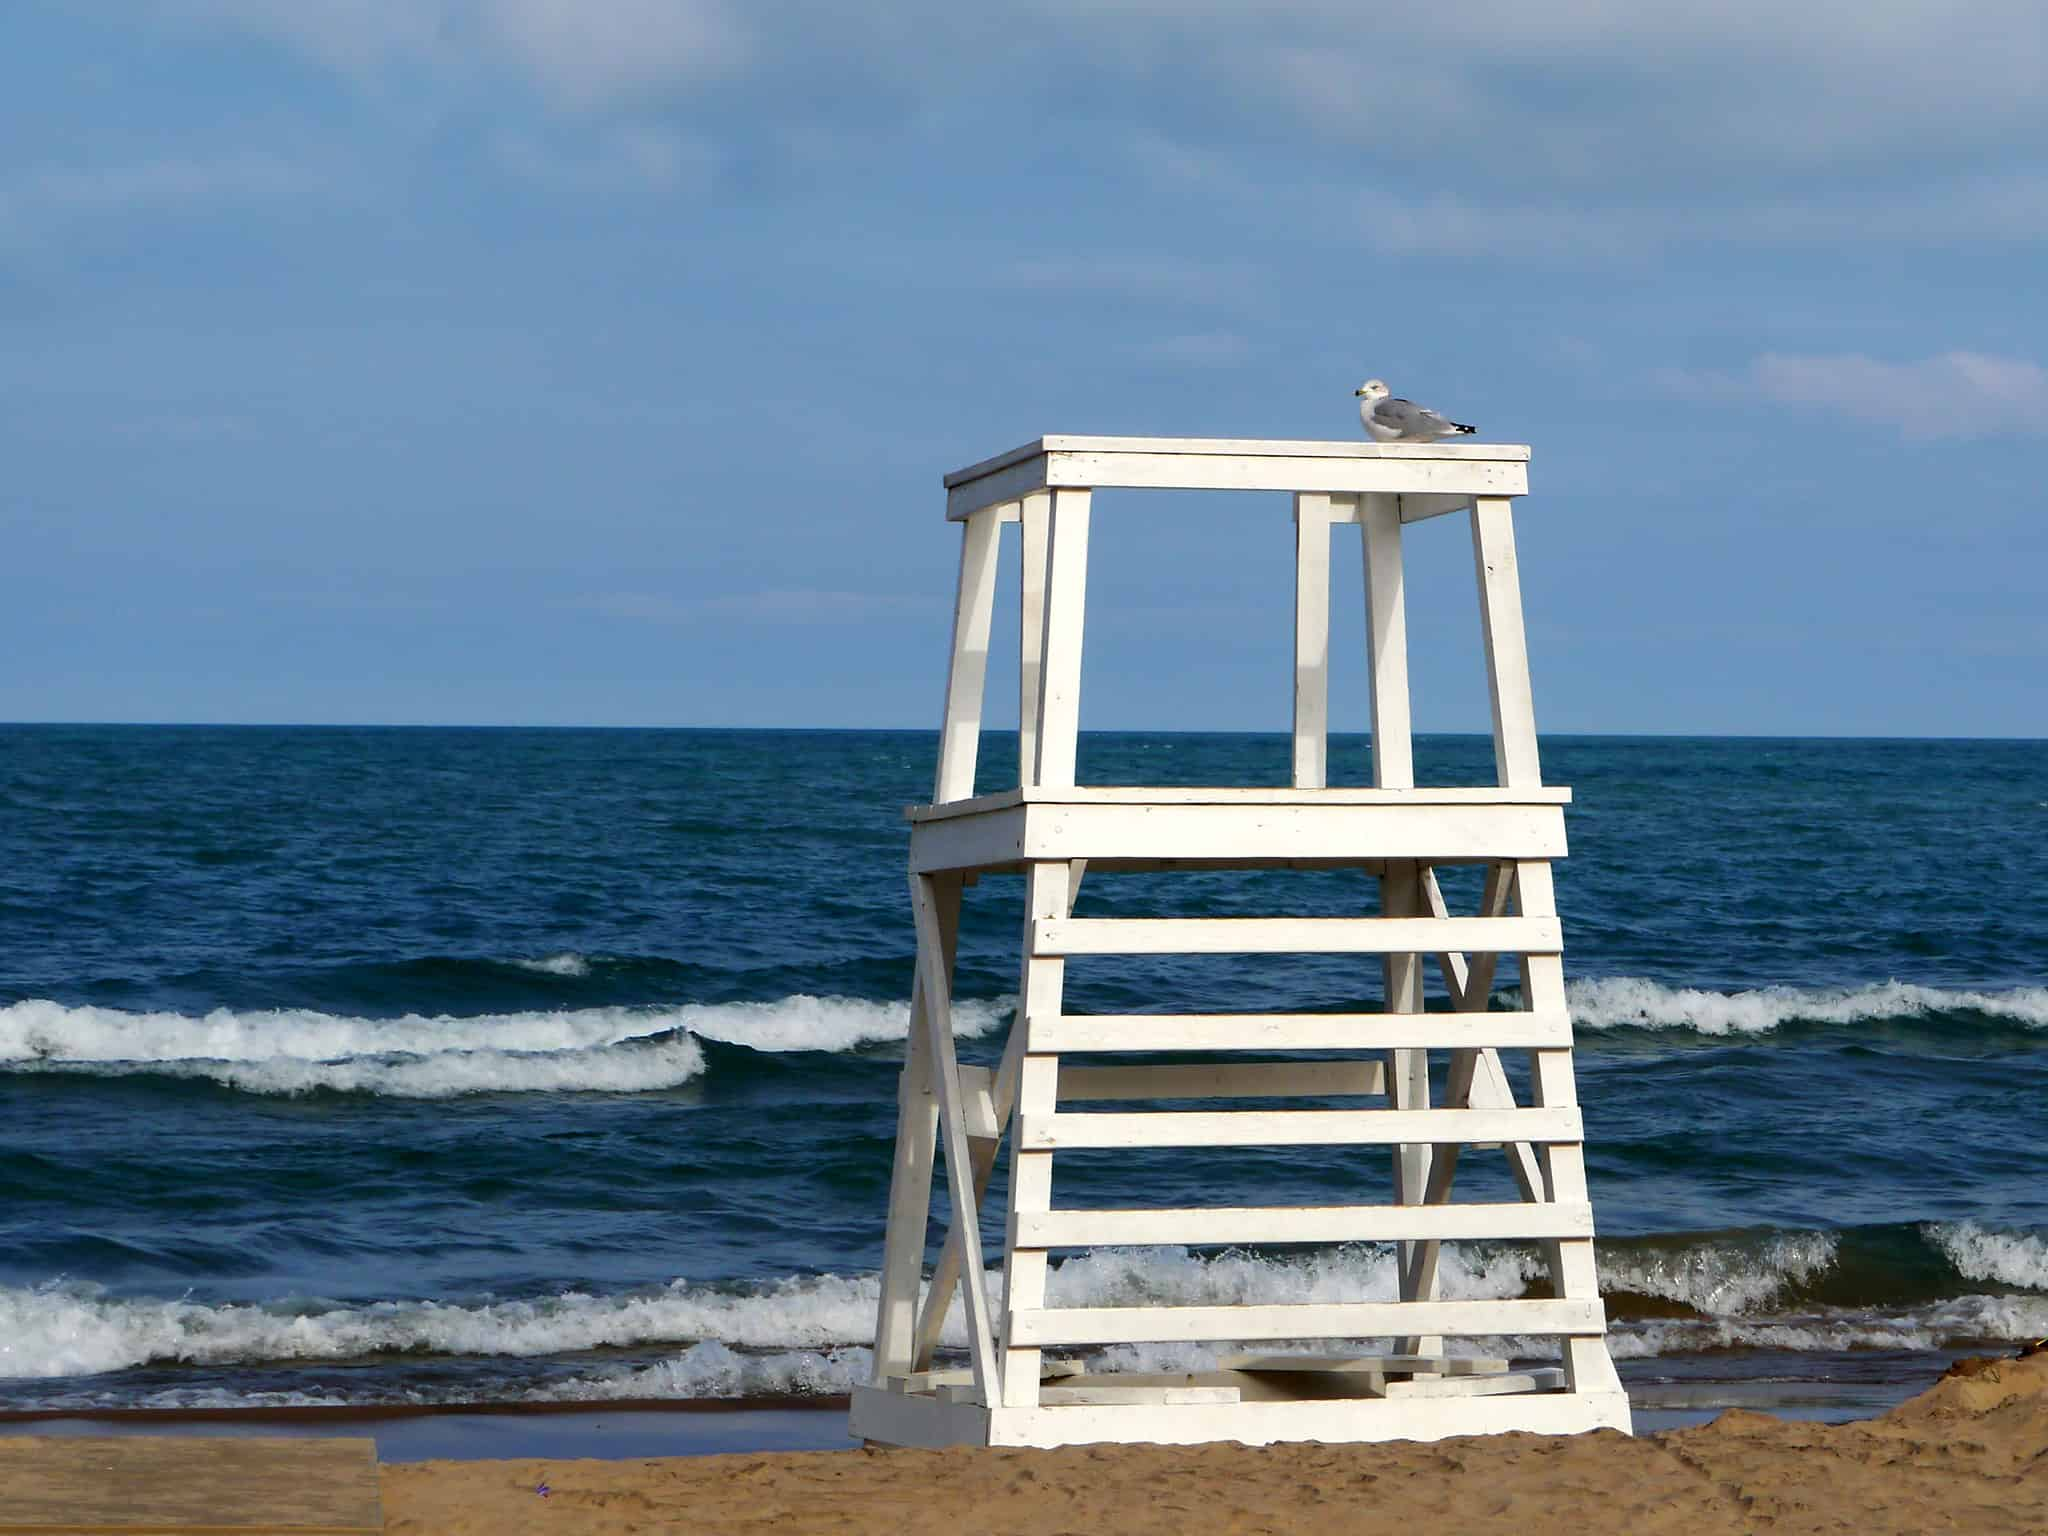 Lifeguard stand at Lighthouse Beach, Evanston IL